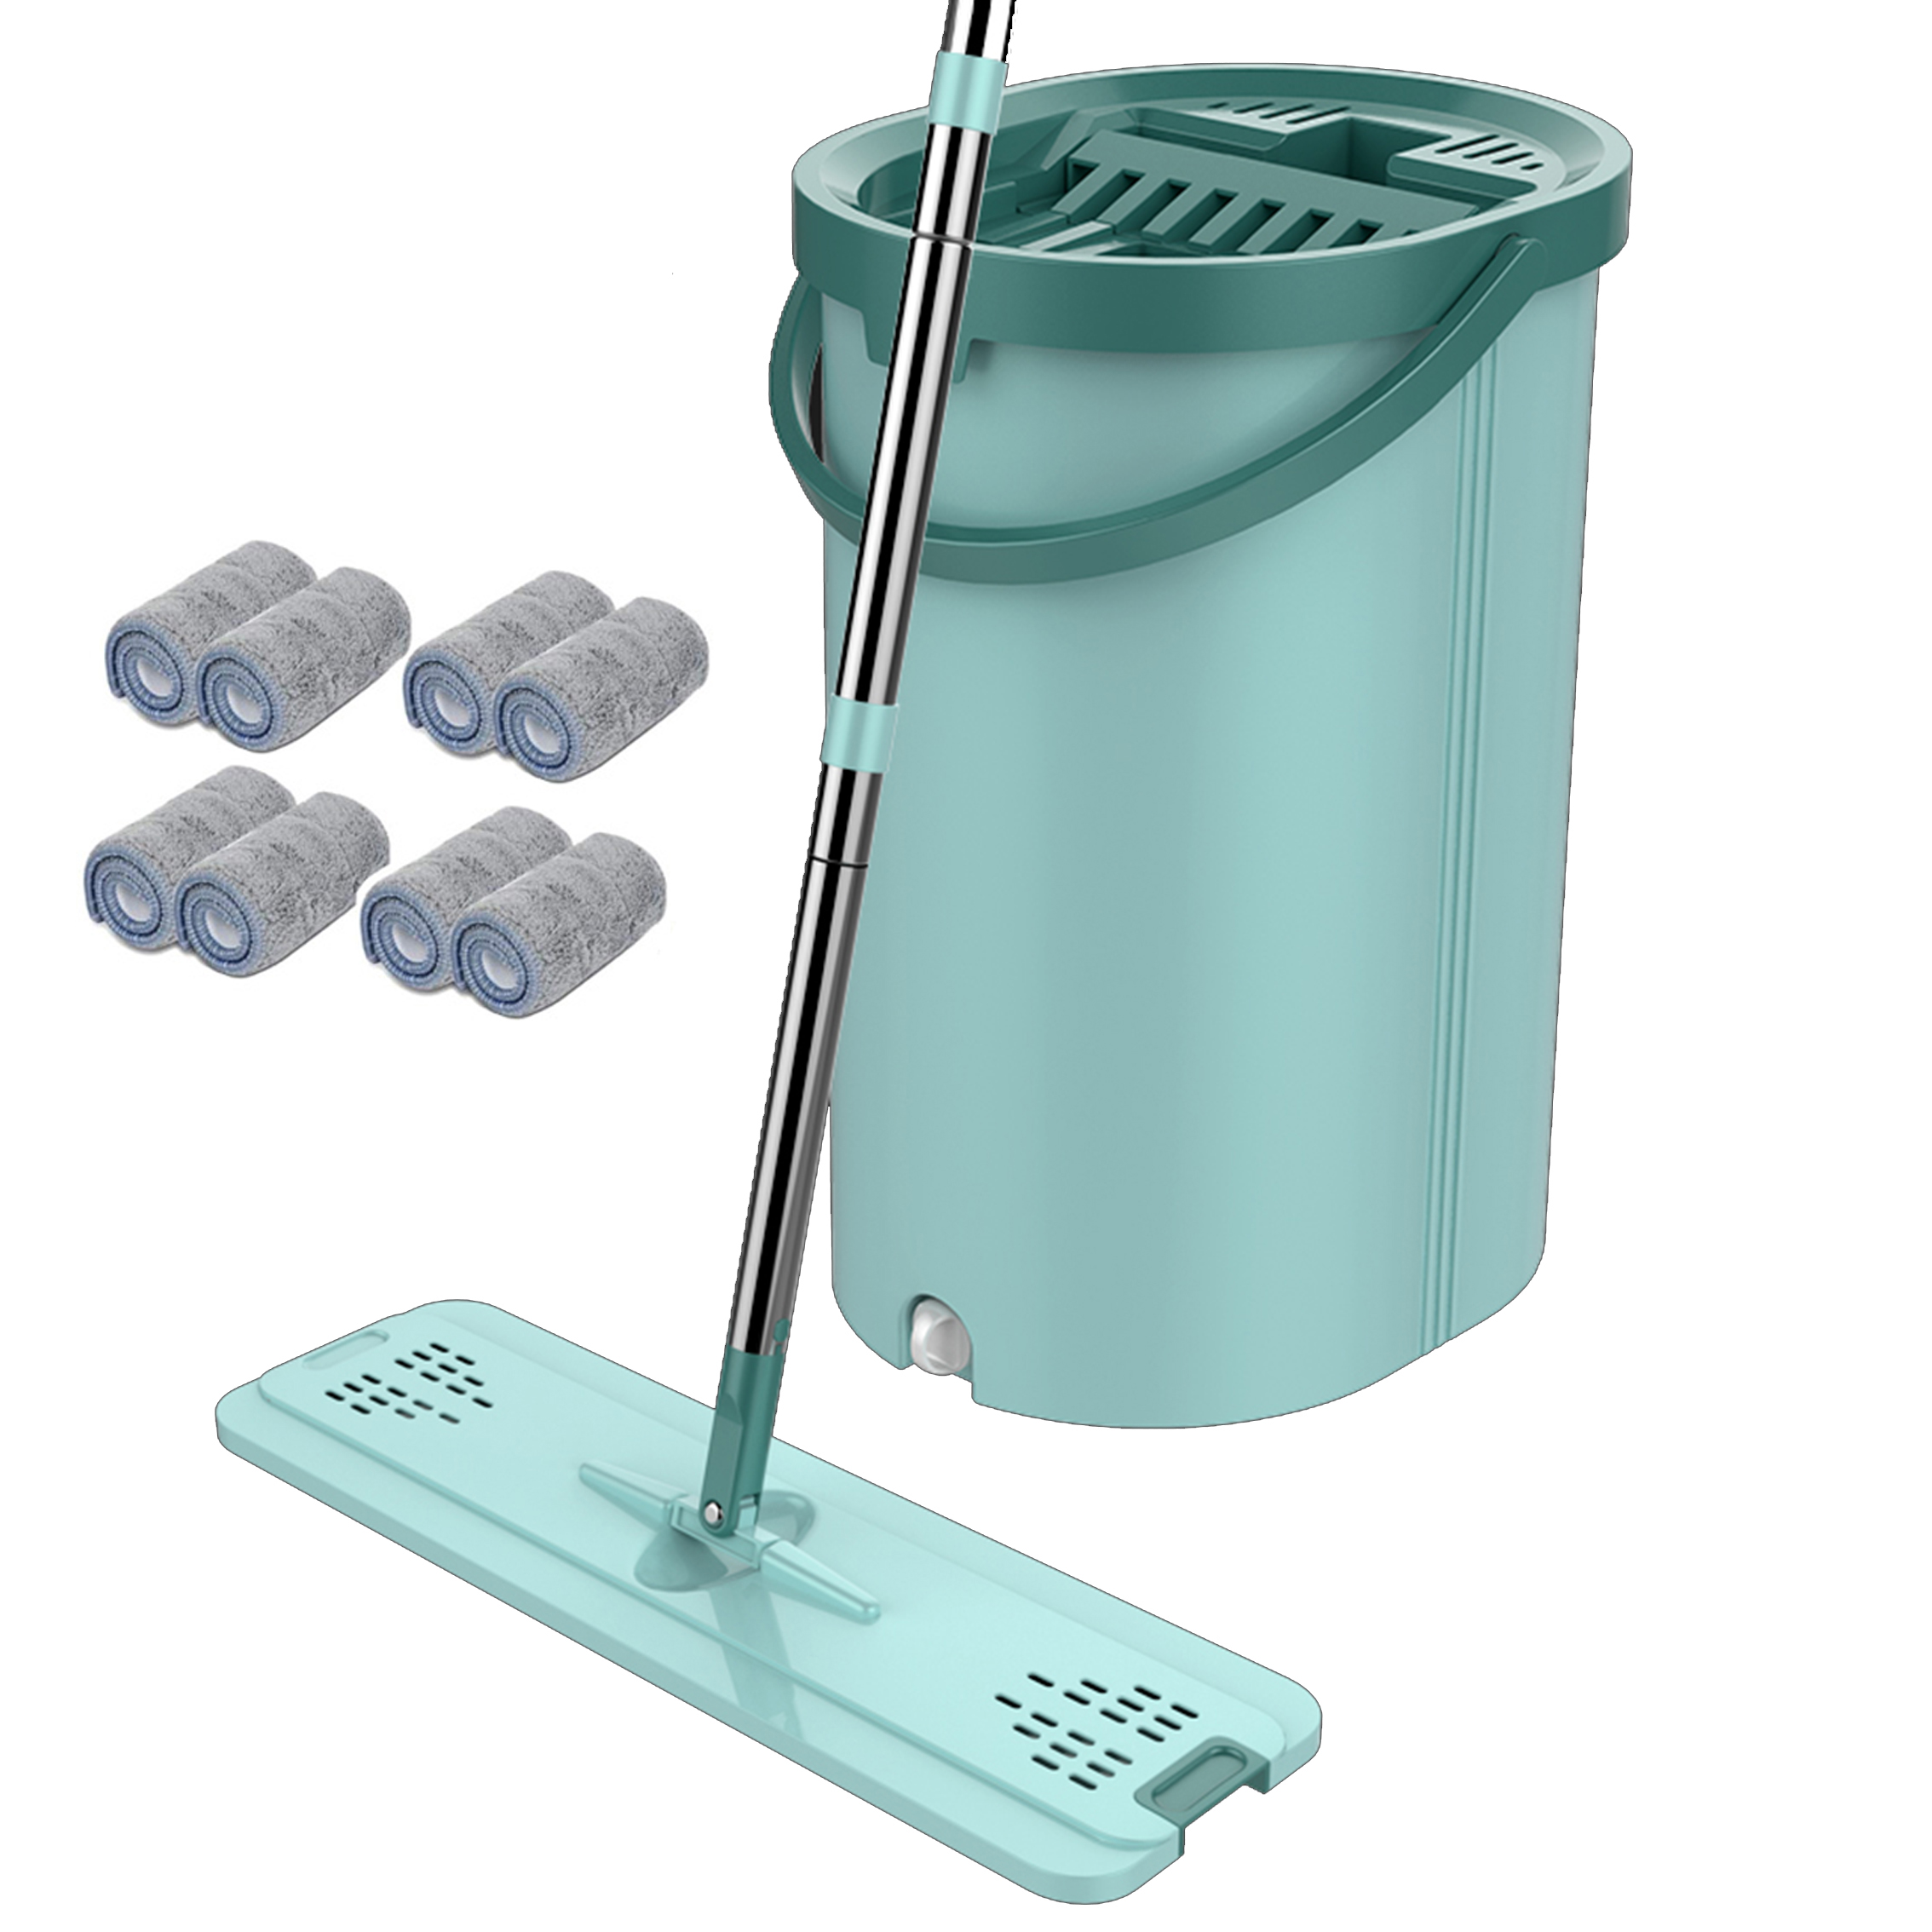 Drop Shipping Magic Microfiber Cleaning Mops Flat Squeeze Magic Automatic Home Kitchen Floor Cleaner Free Hand Mop with Bucket